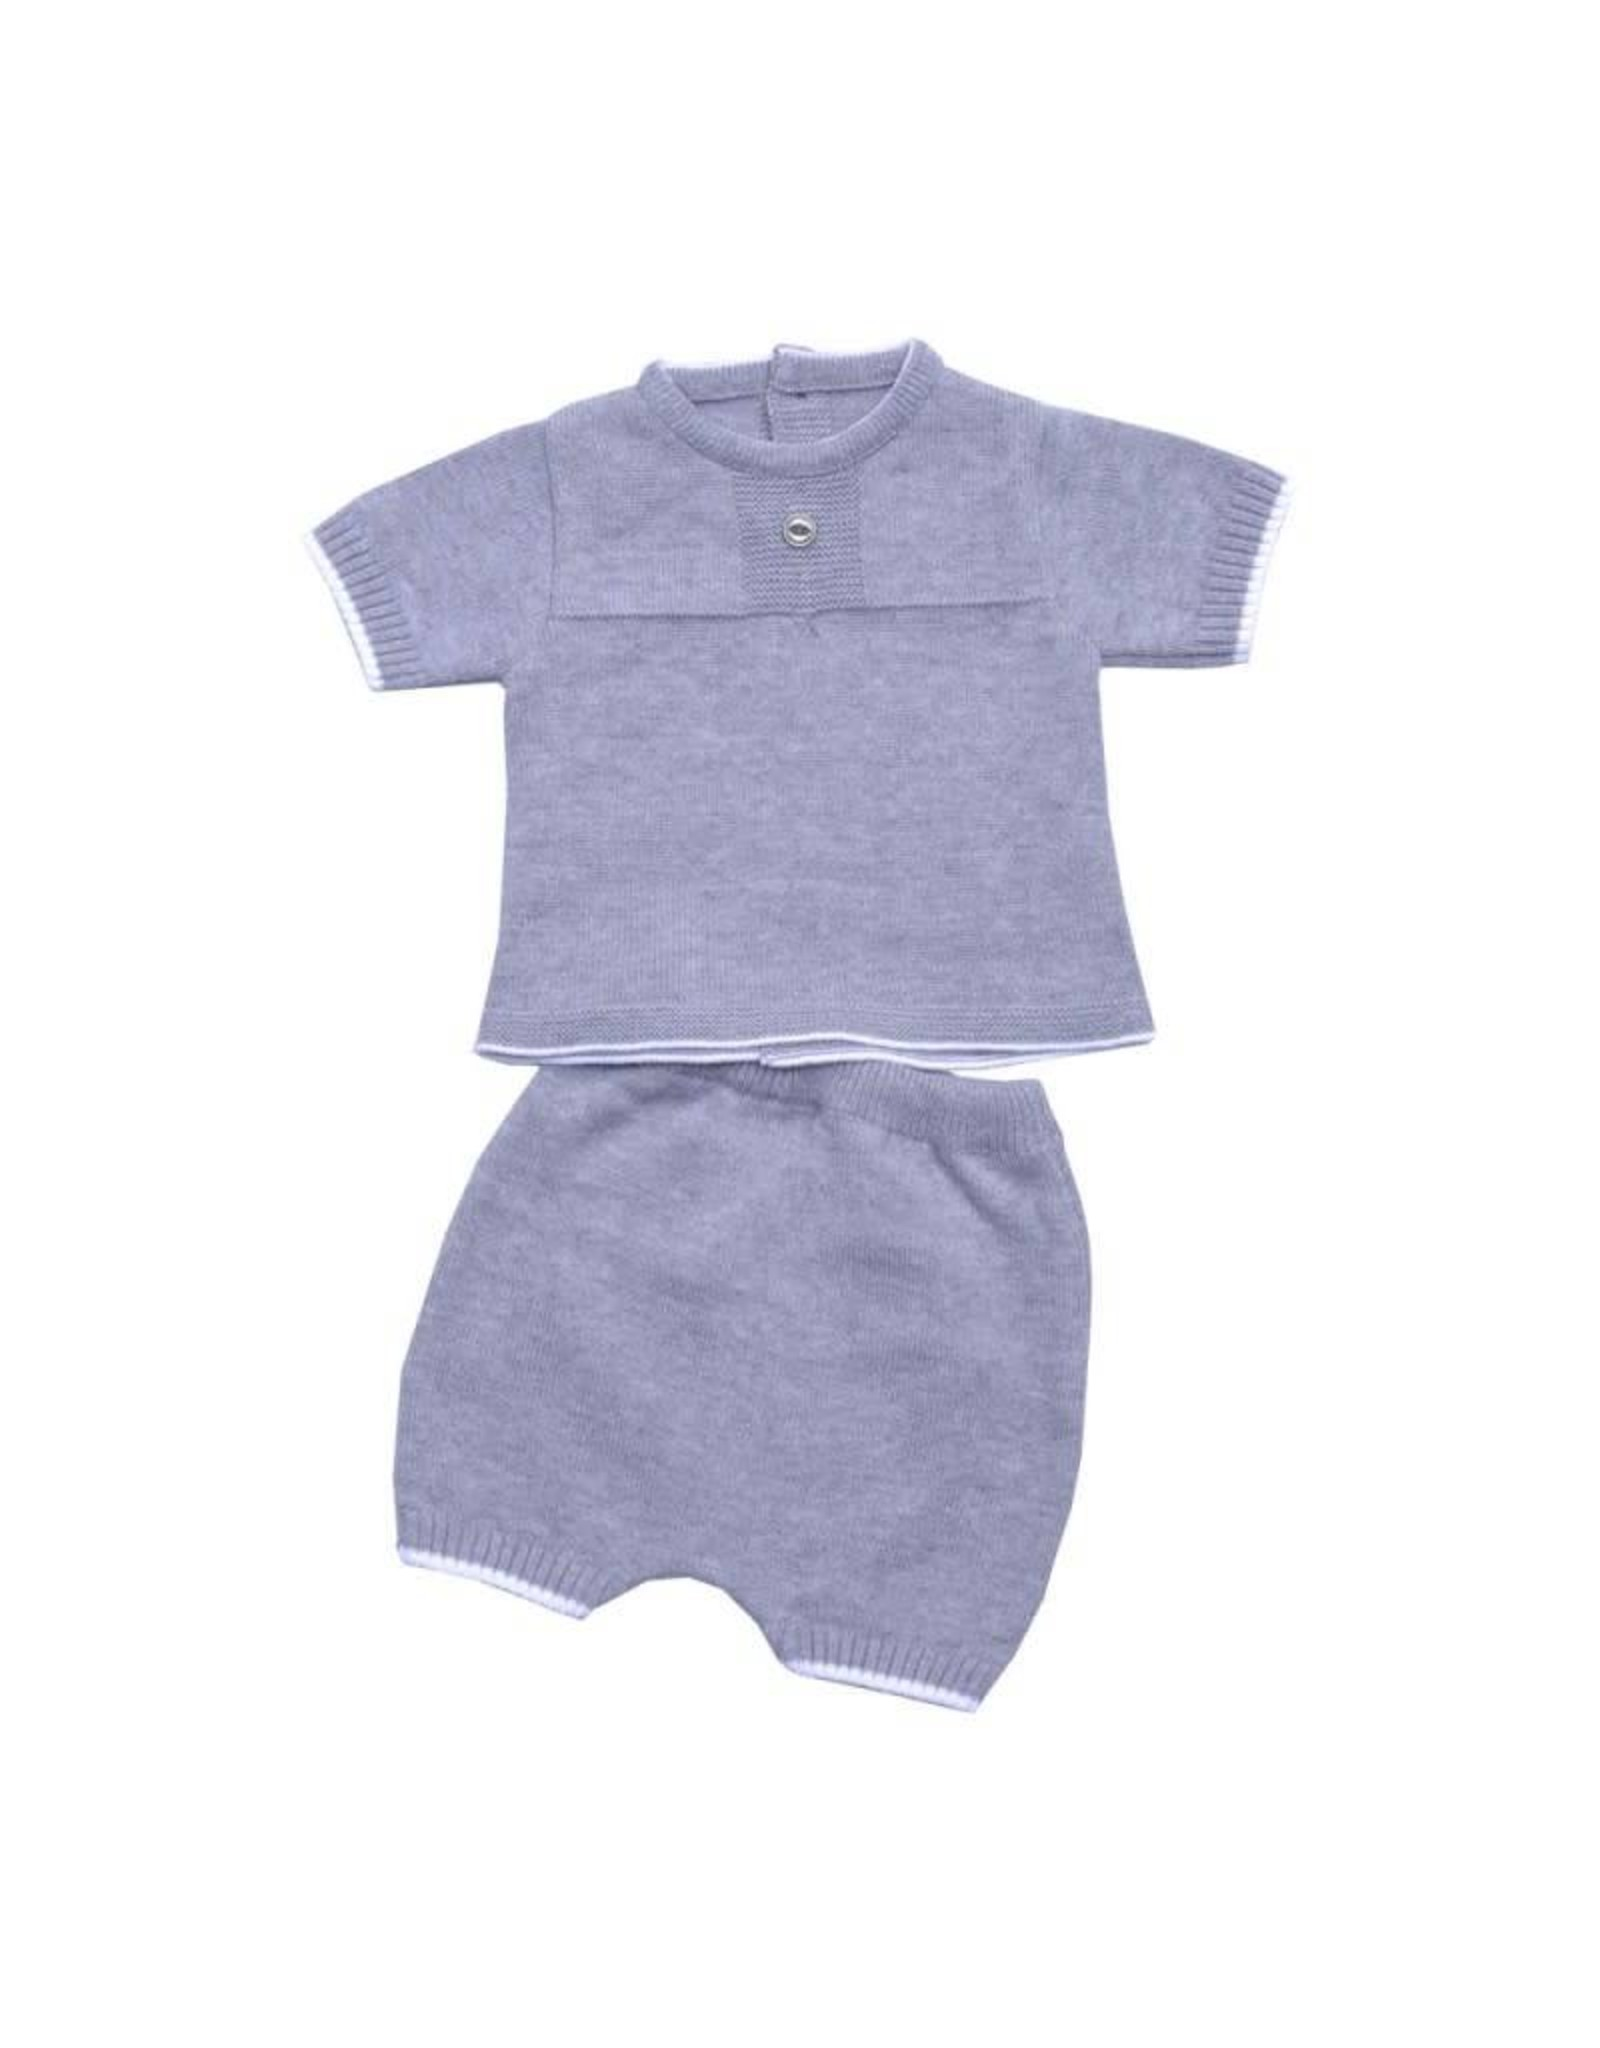 MINHON Grey Set